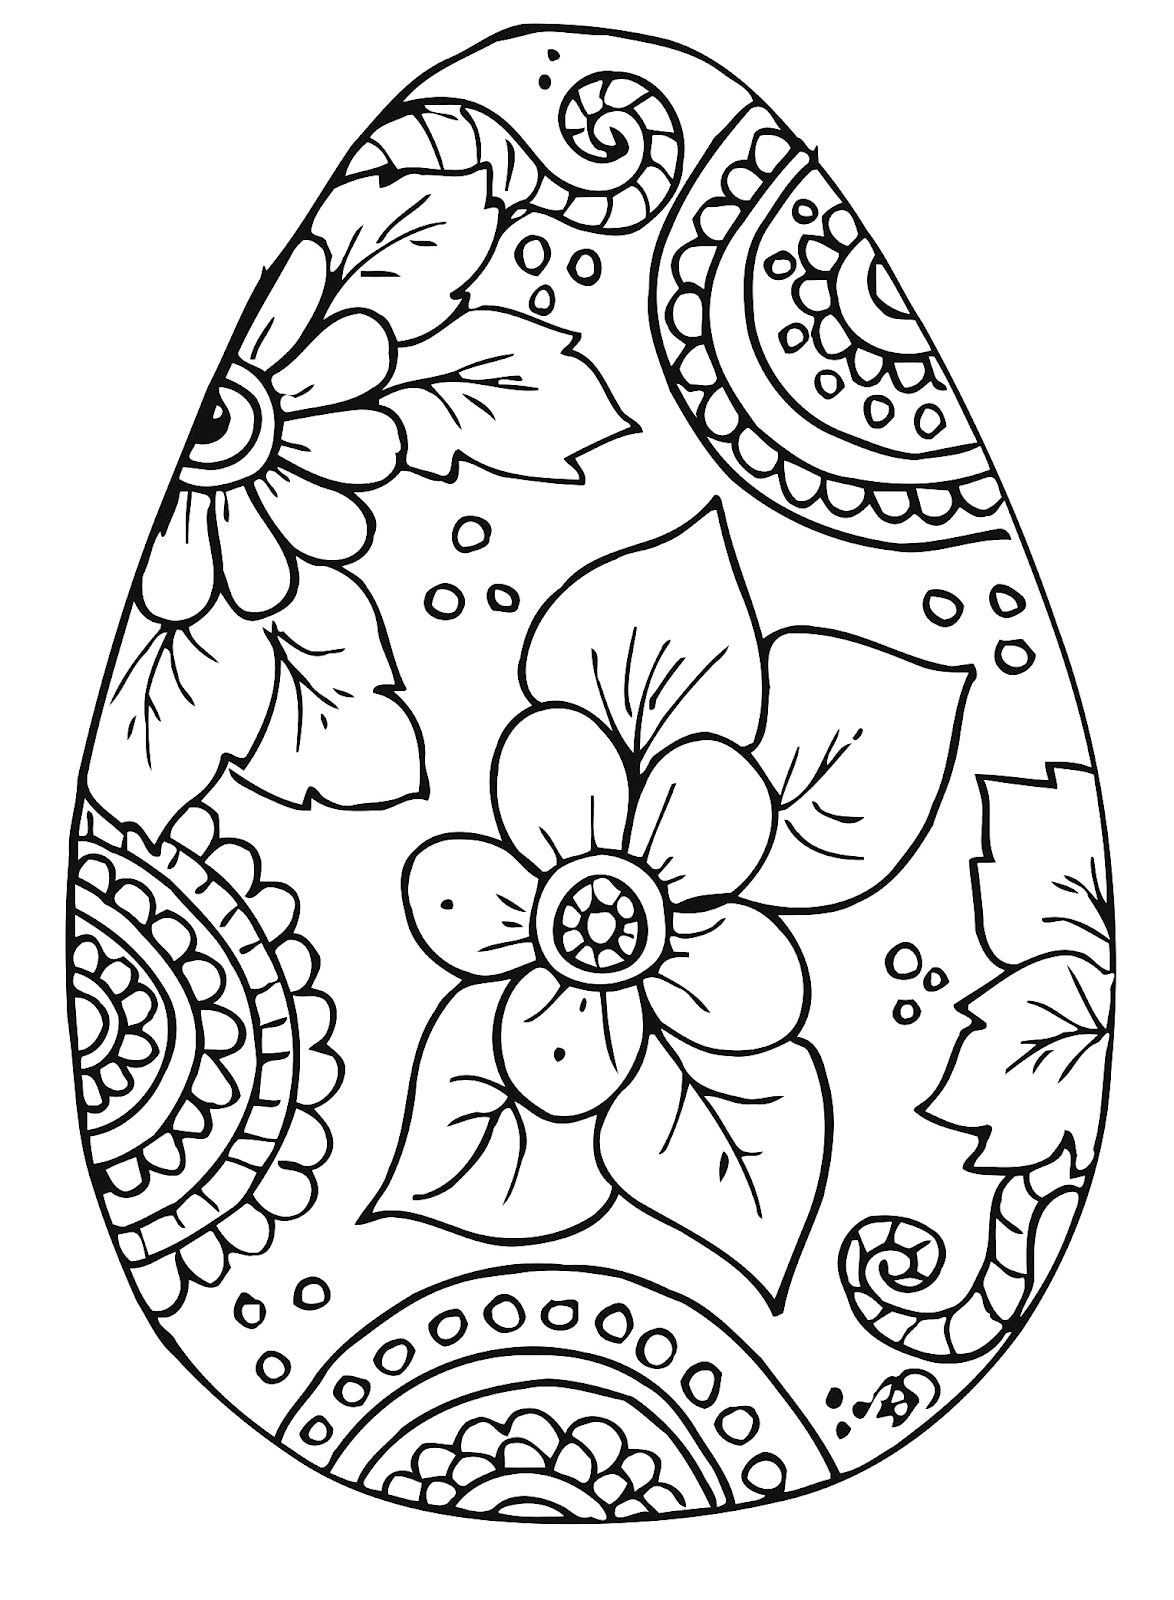 Easter Coloring 10 Cool Free Printable Easter Coloring Pages for Gallery Of Delighted Bunny Print Out Coloring Pages Easter for Kids Crazy Printable